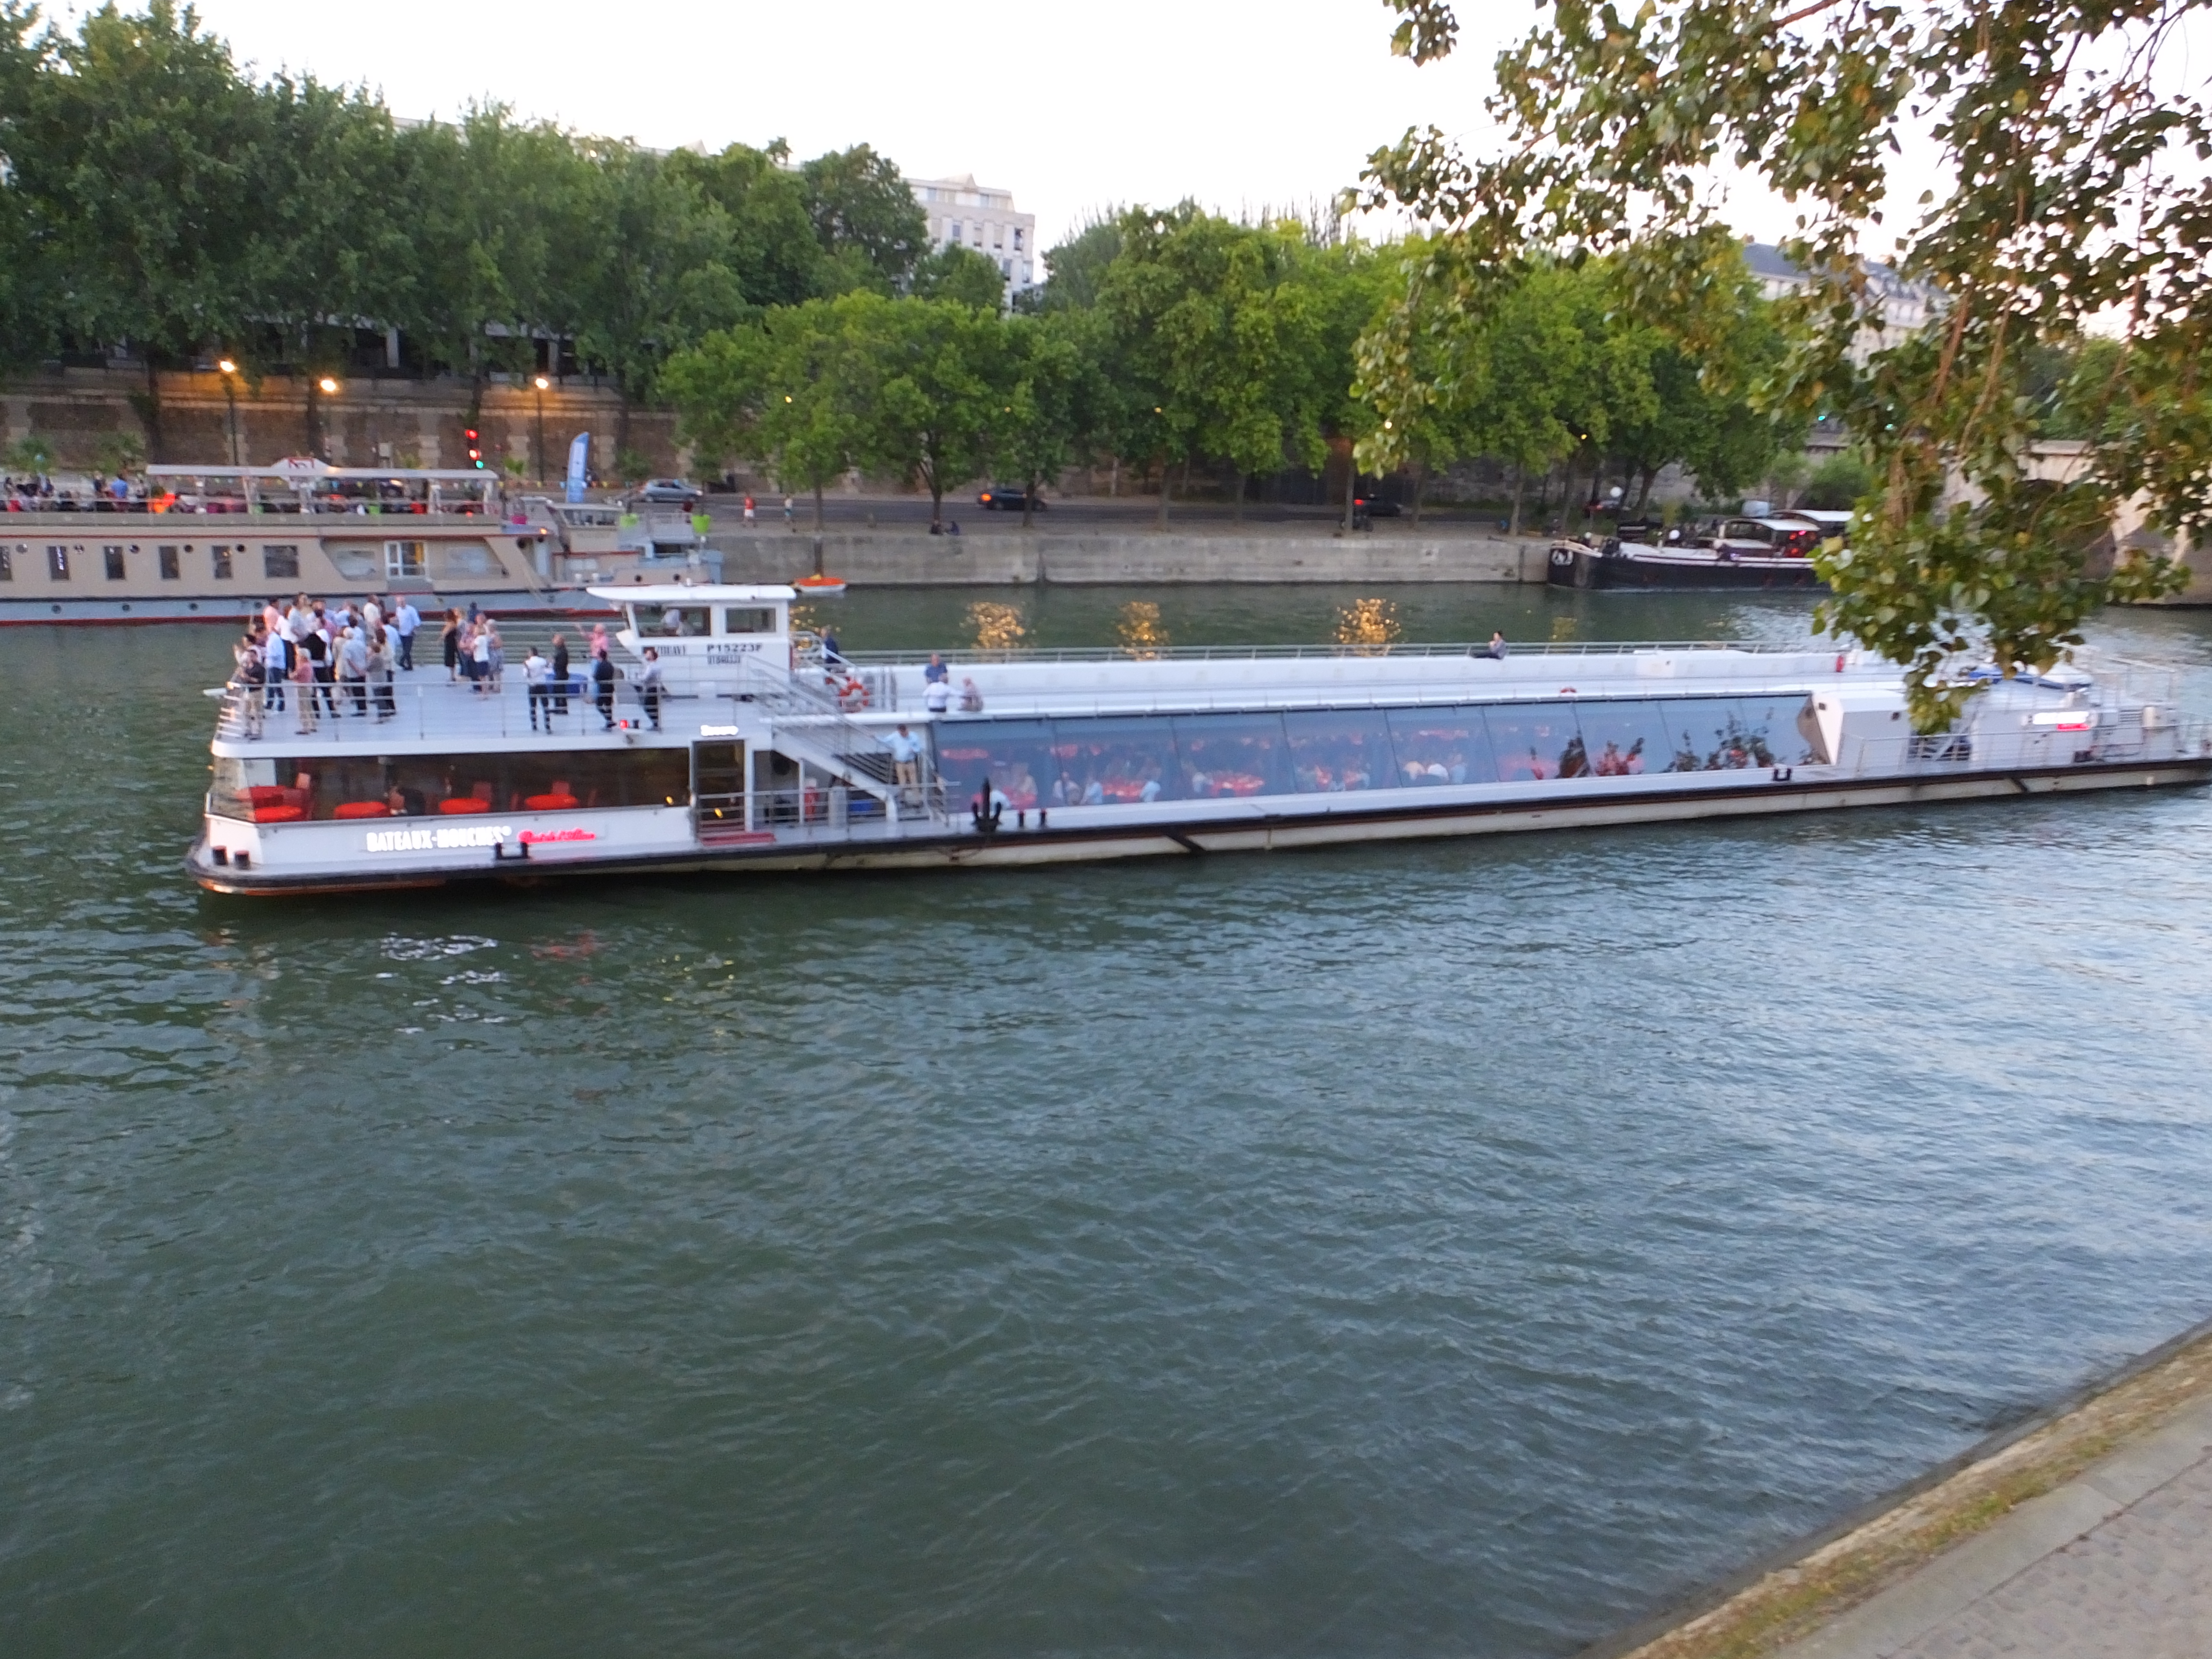 The river boats are back in full swing